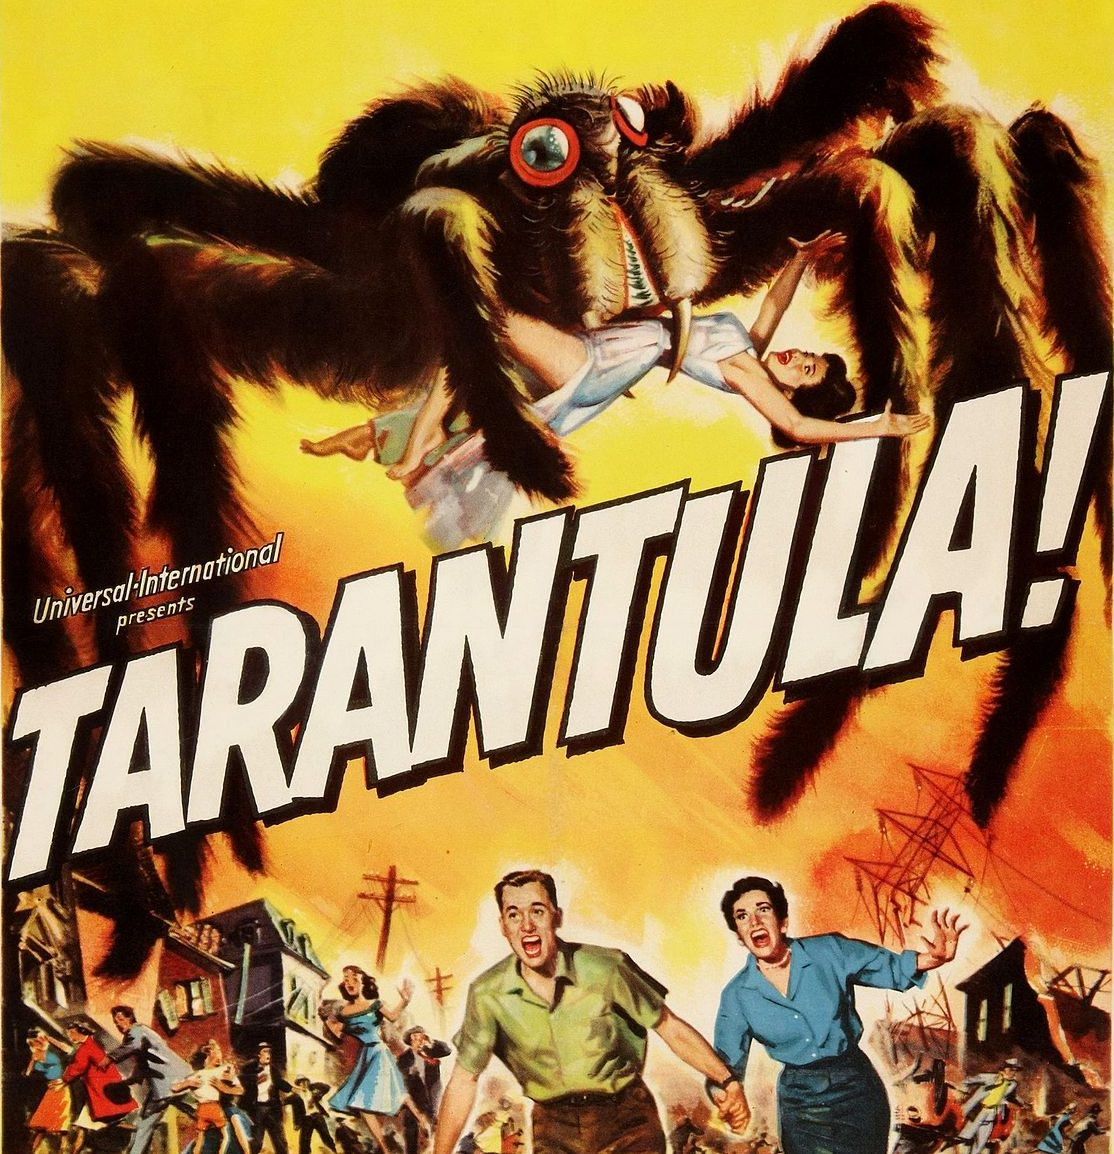 Tarantula 1955 e1598625274630 20 Things You Probably Didn't Know About Clint Eastwood's 1982 Film Firefox